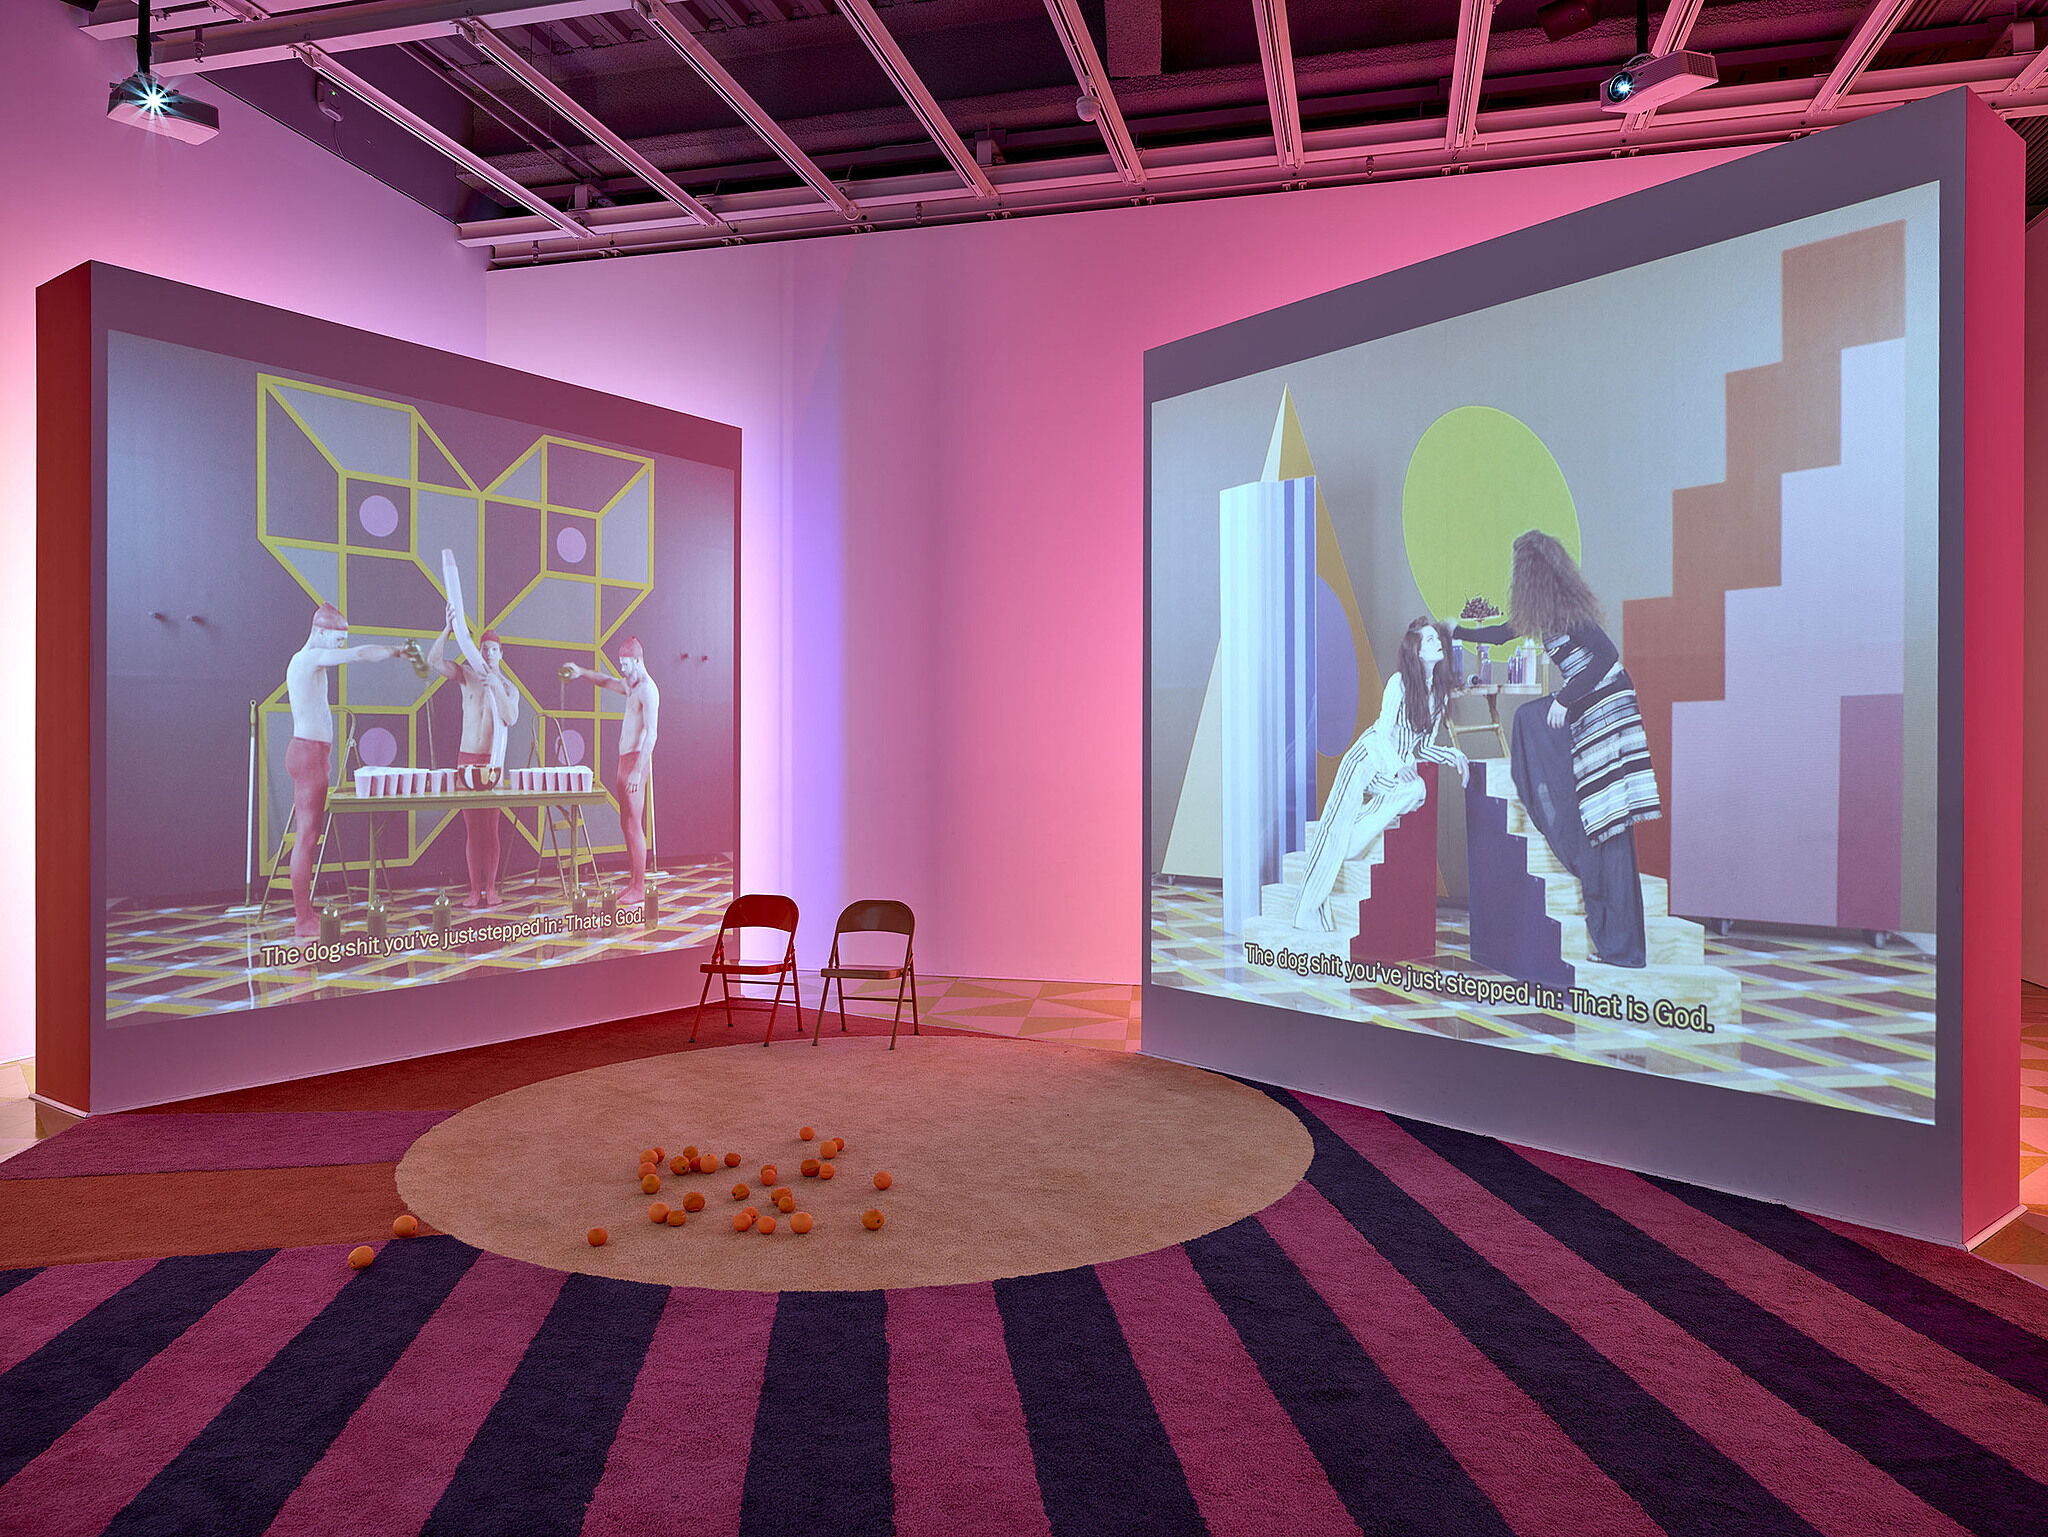 Two screens showing videos with two chairs in a gallery with pink lighting.